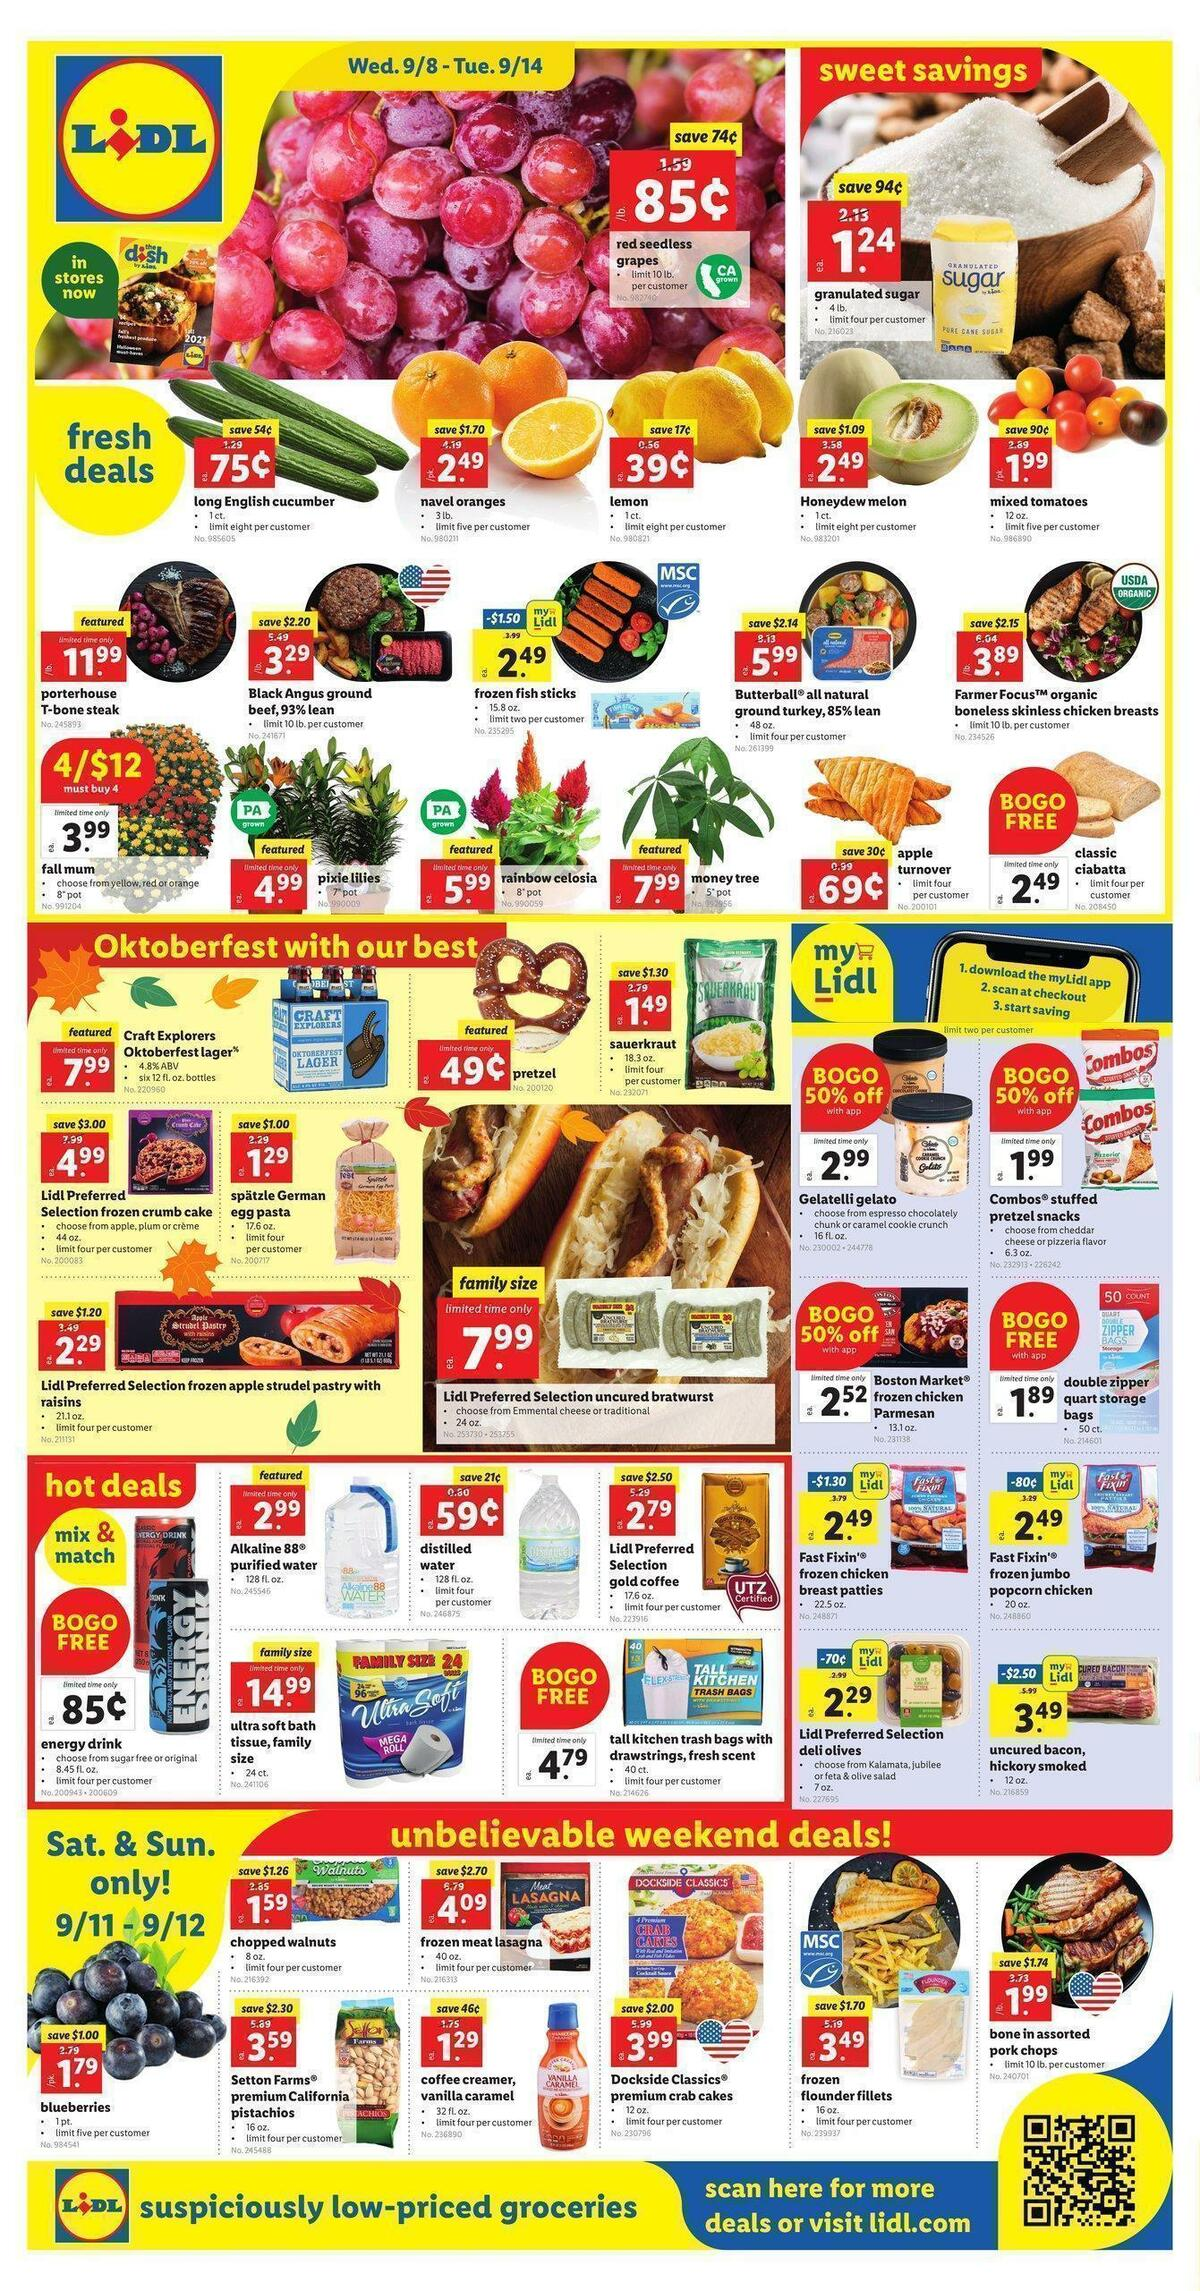 LIDL Weekly Ad from September 8